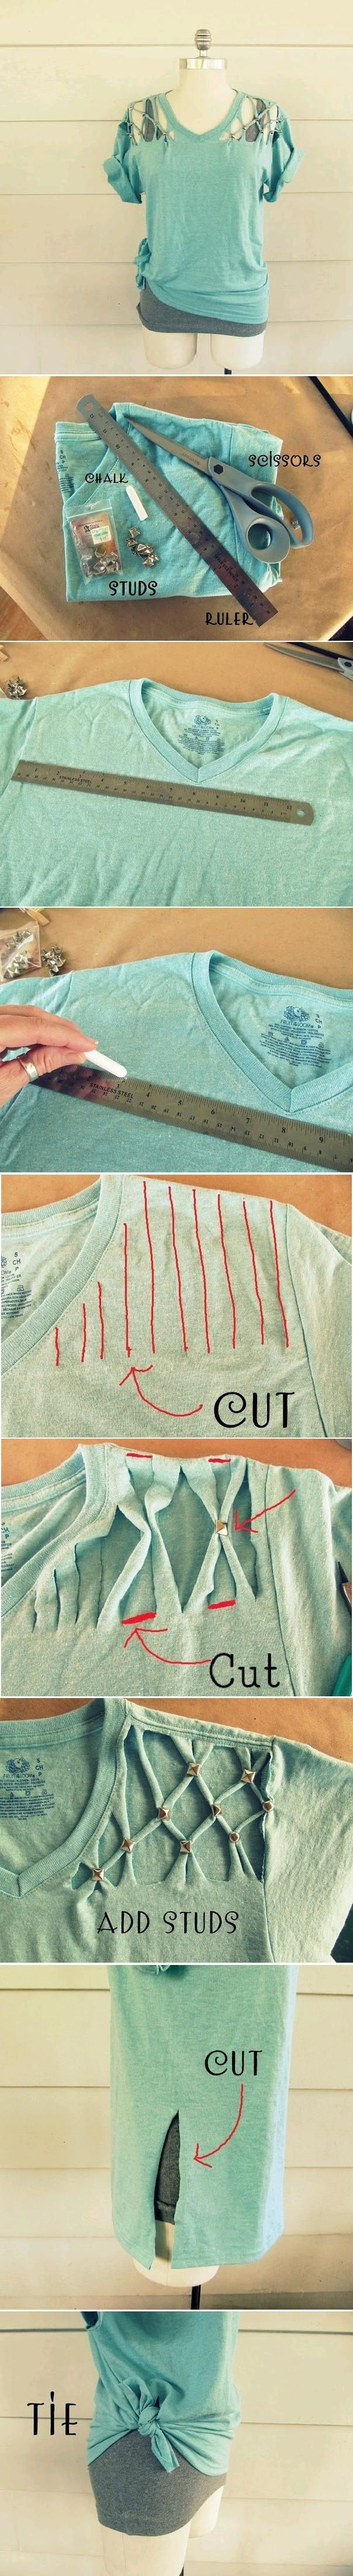 DIY Cool Studded T-Shirt - cute!